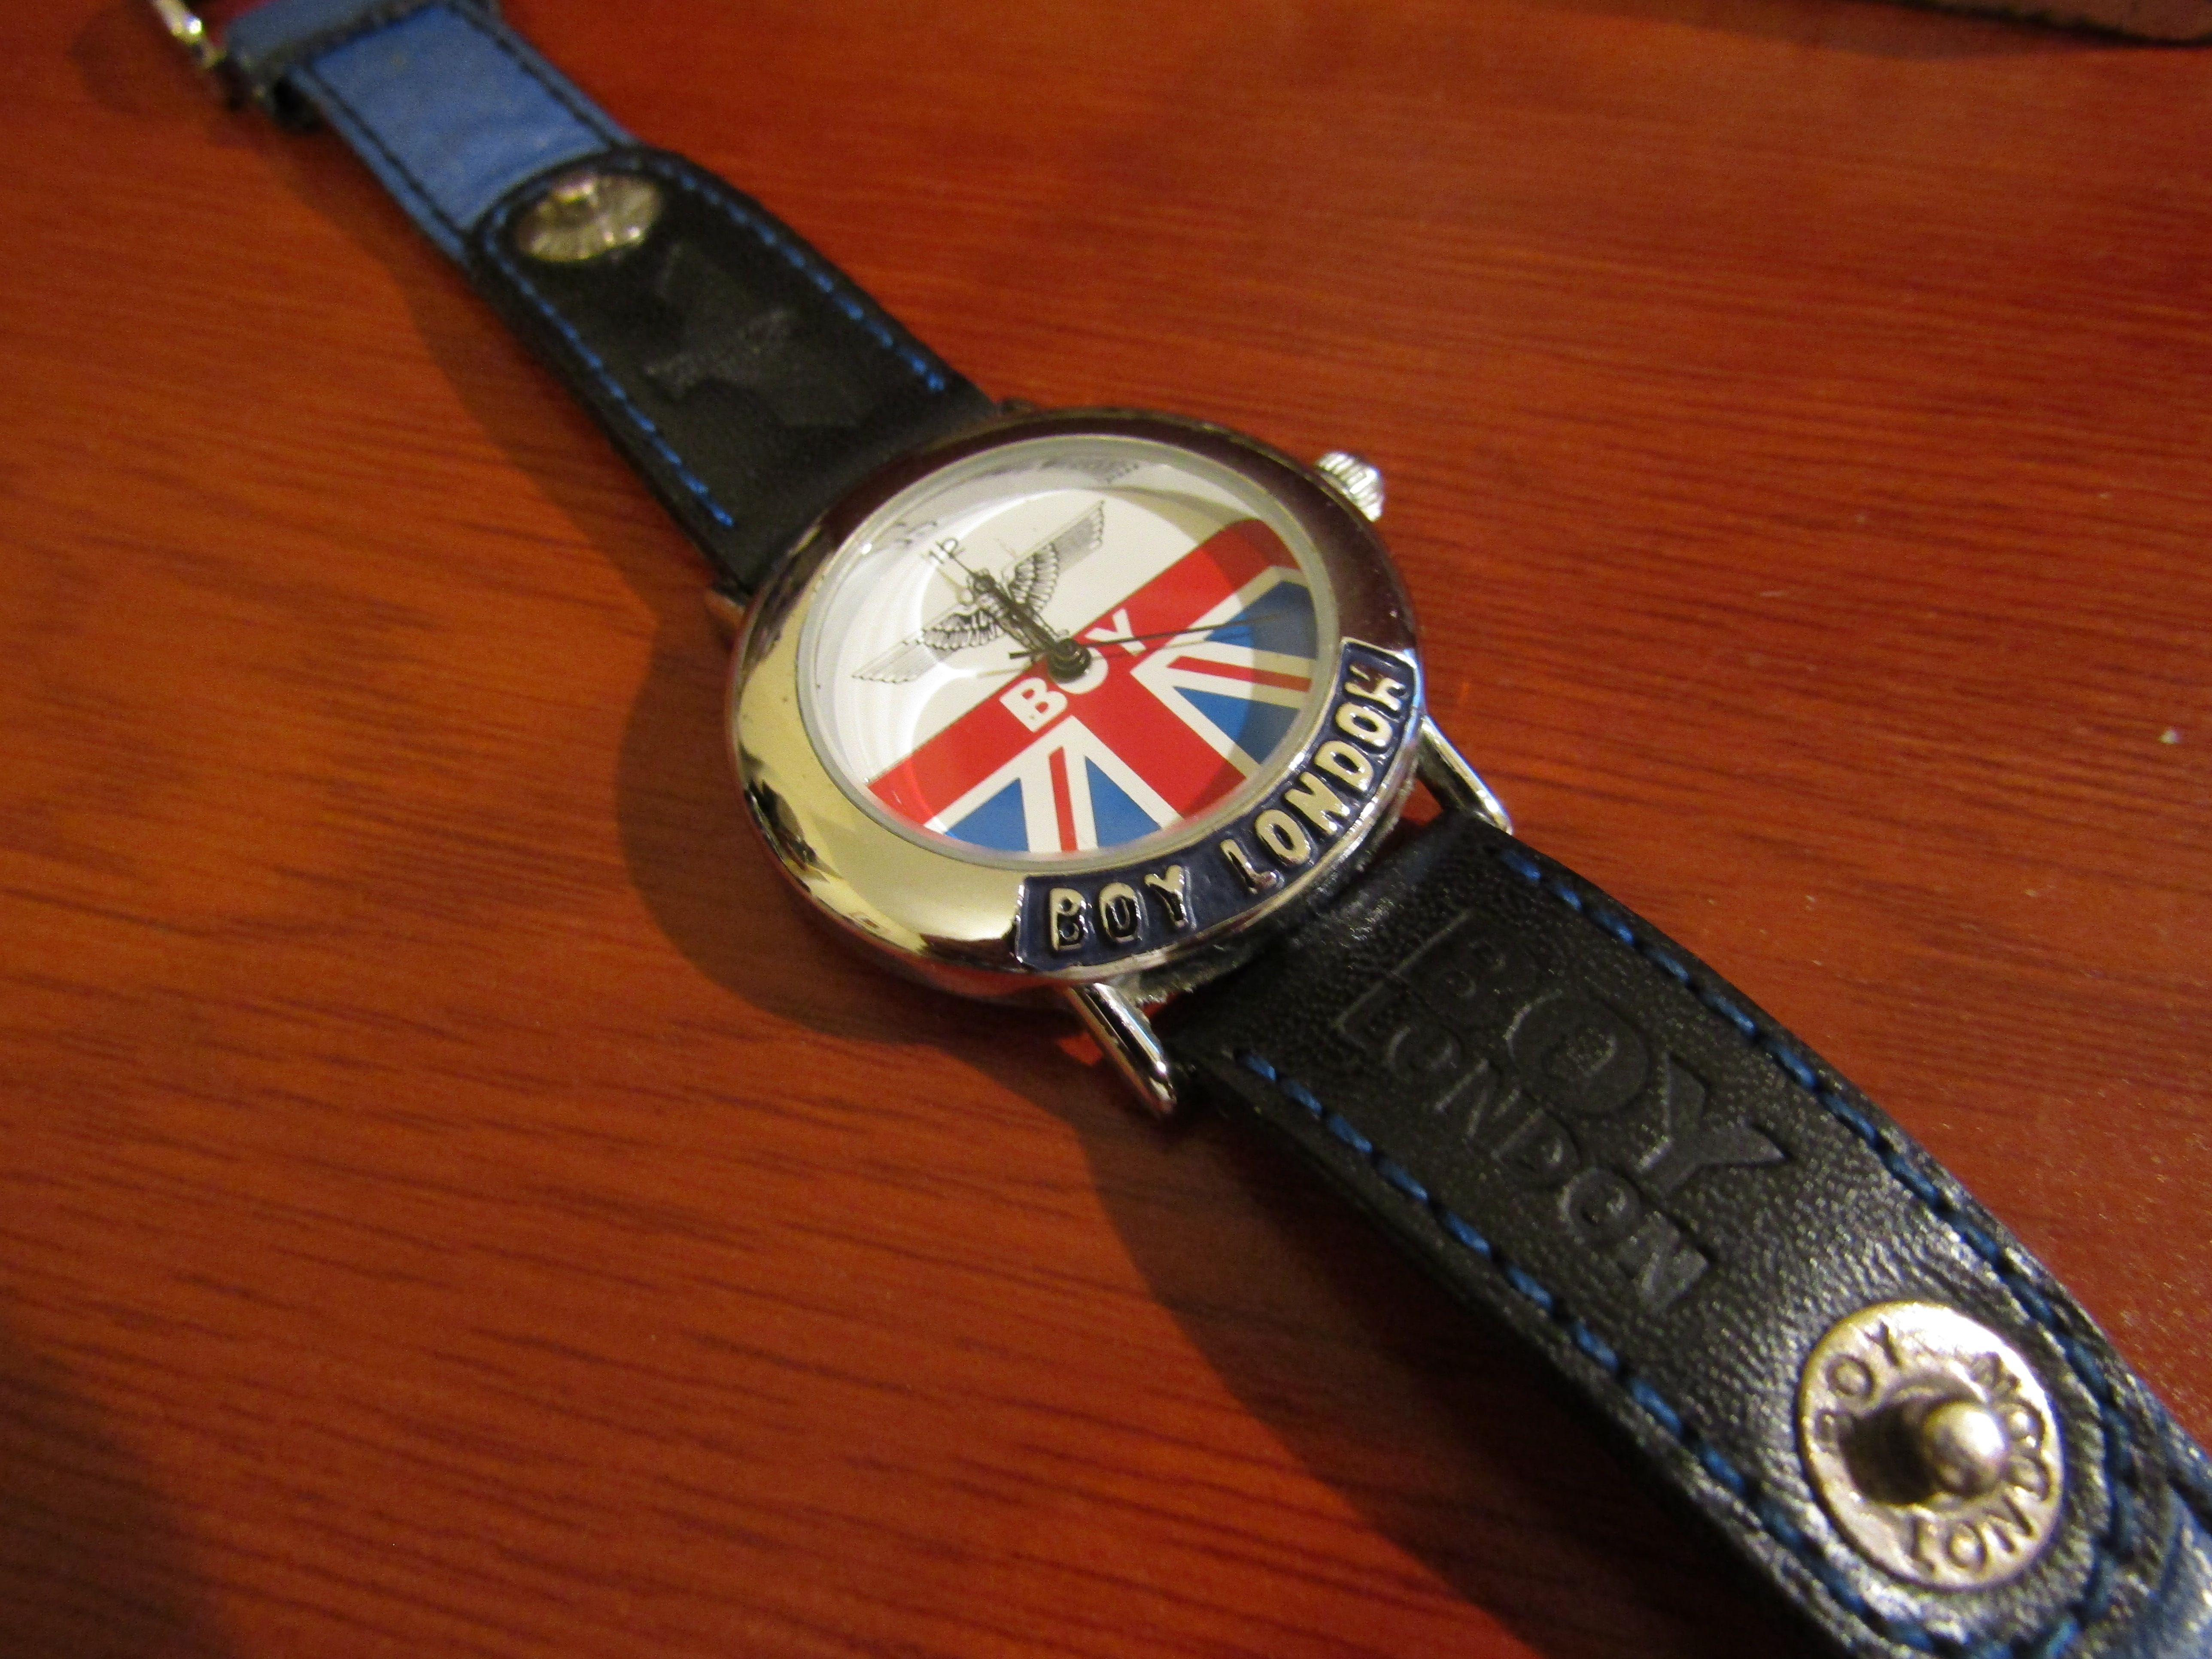 087bb70fe351 BOY London watch with original strap I have another like this but it hasn t  the original strap but it changes colour   it s a